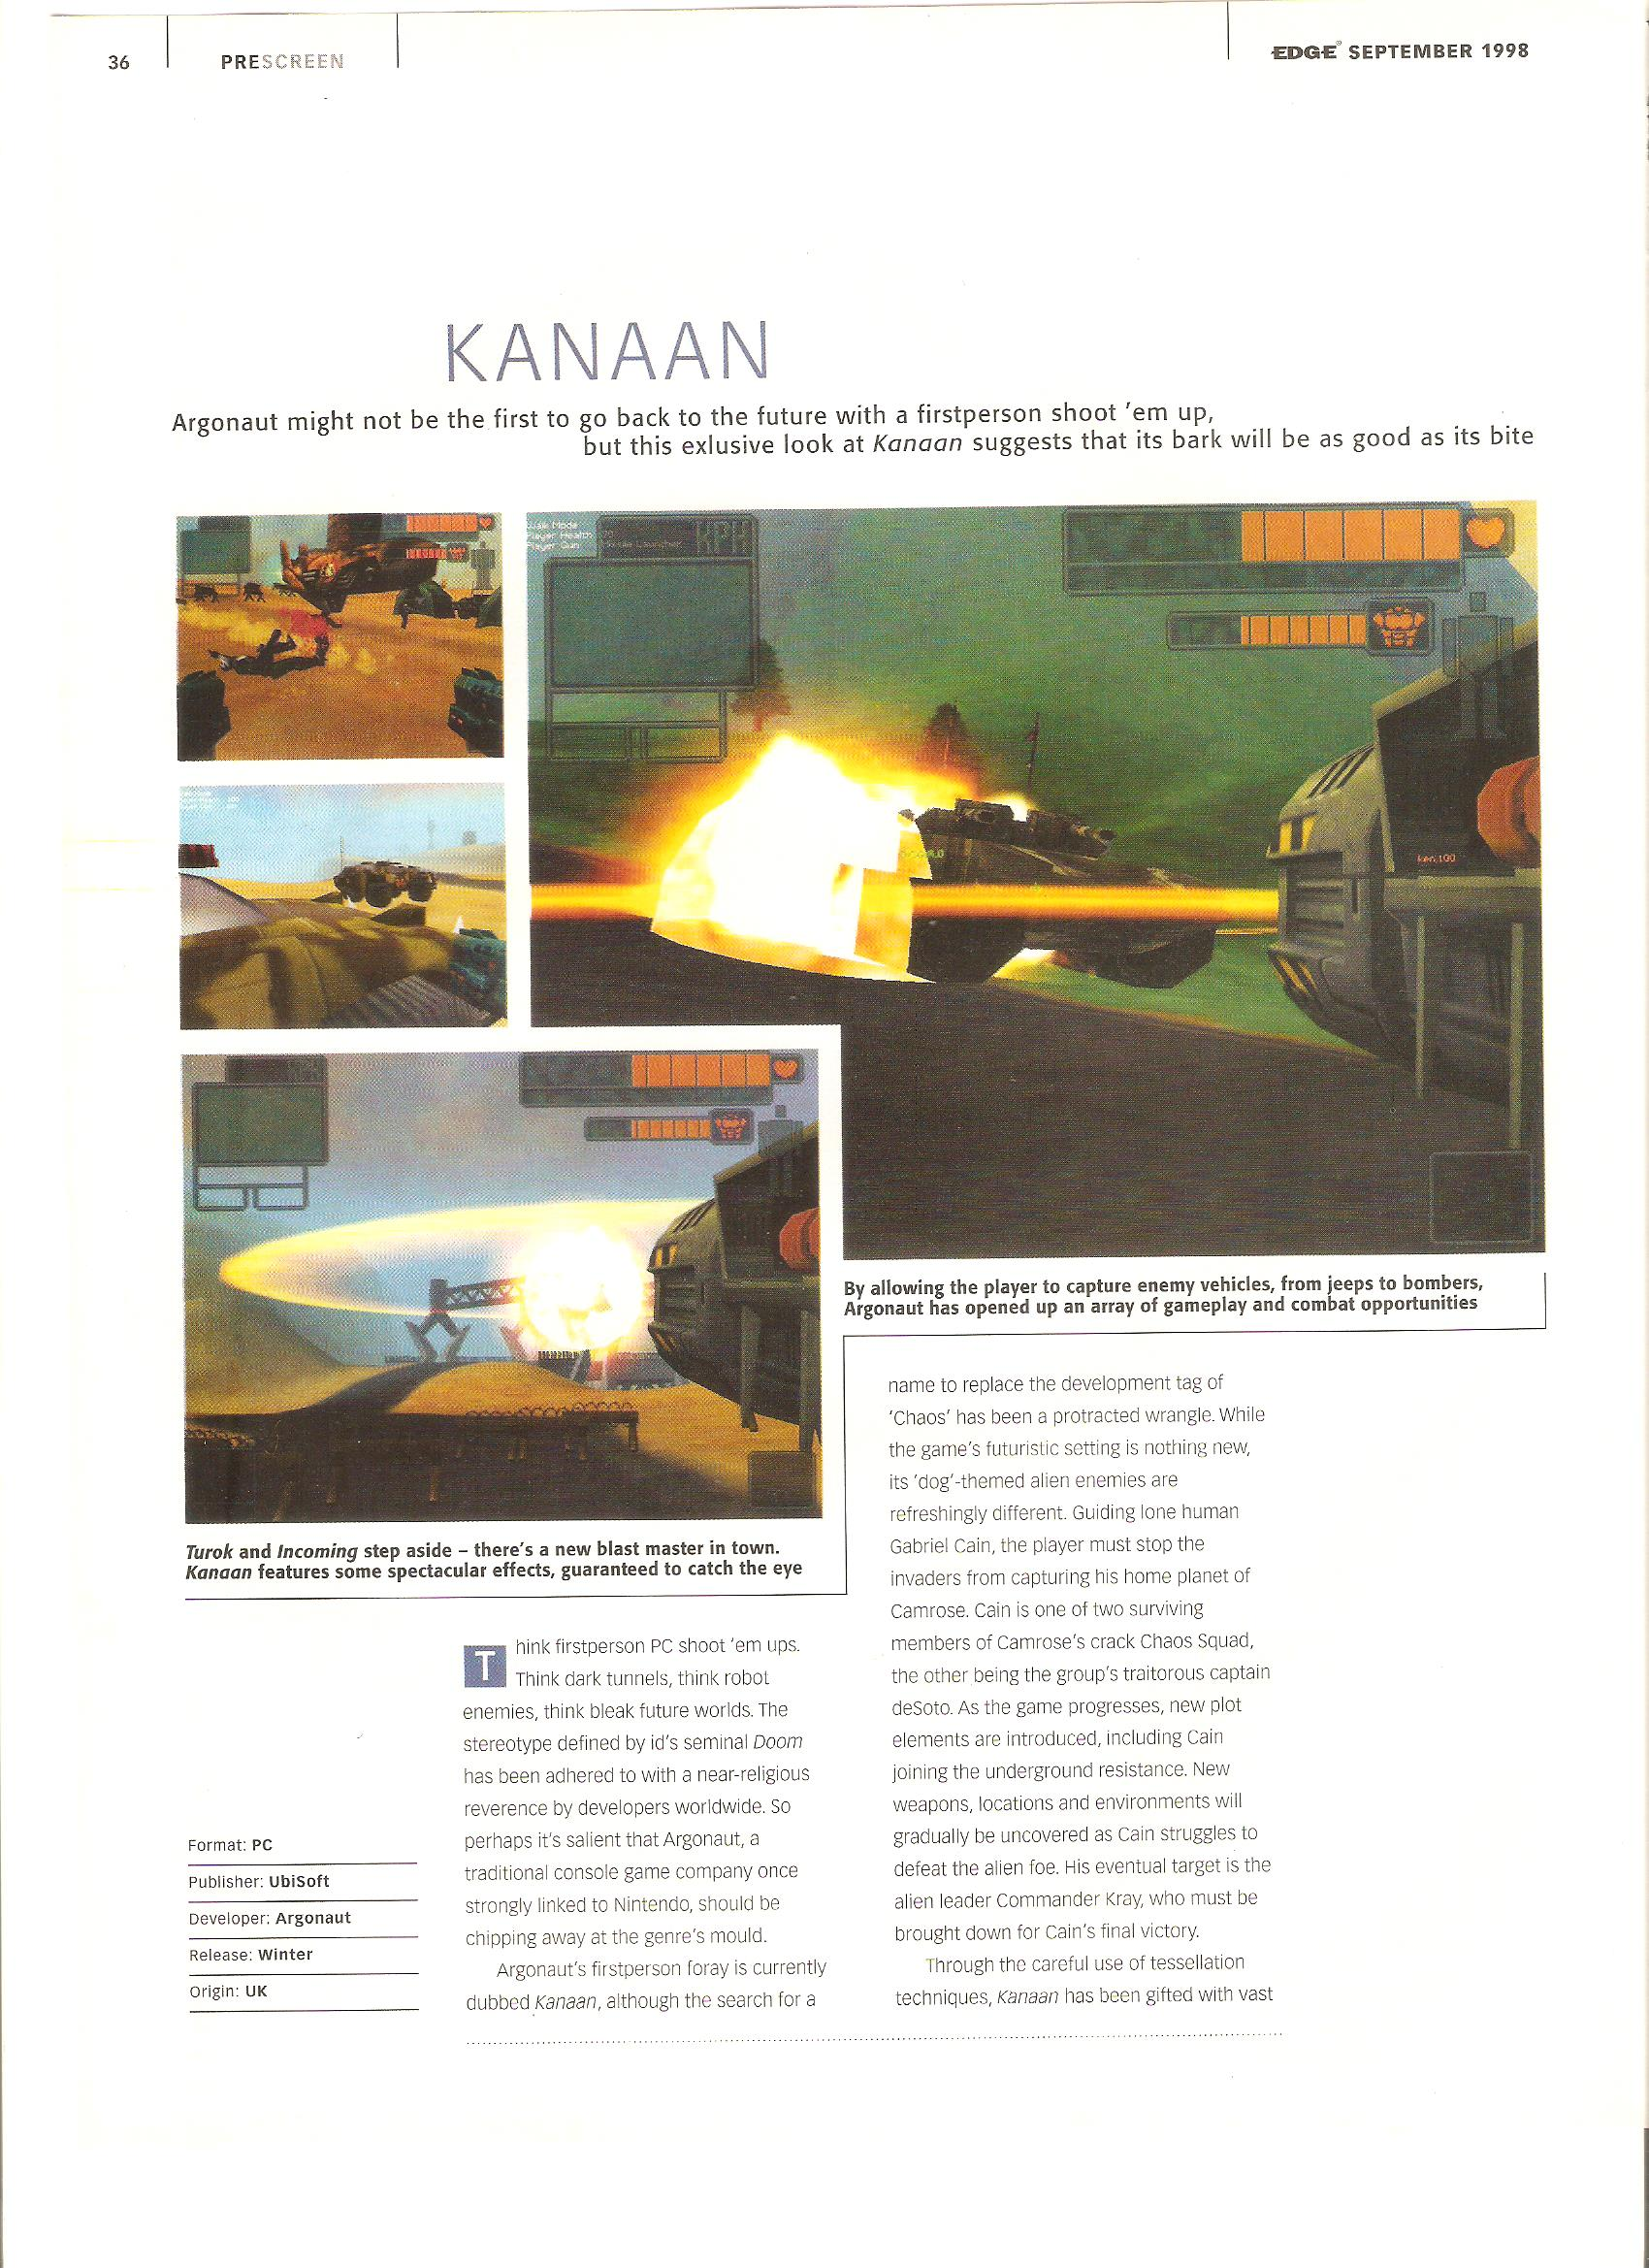 kanaan-argonaut-edge-september-1998-02.jpeg